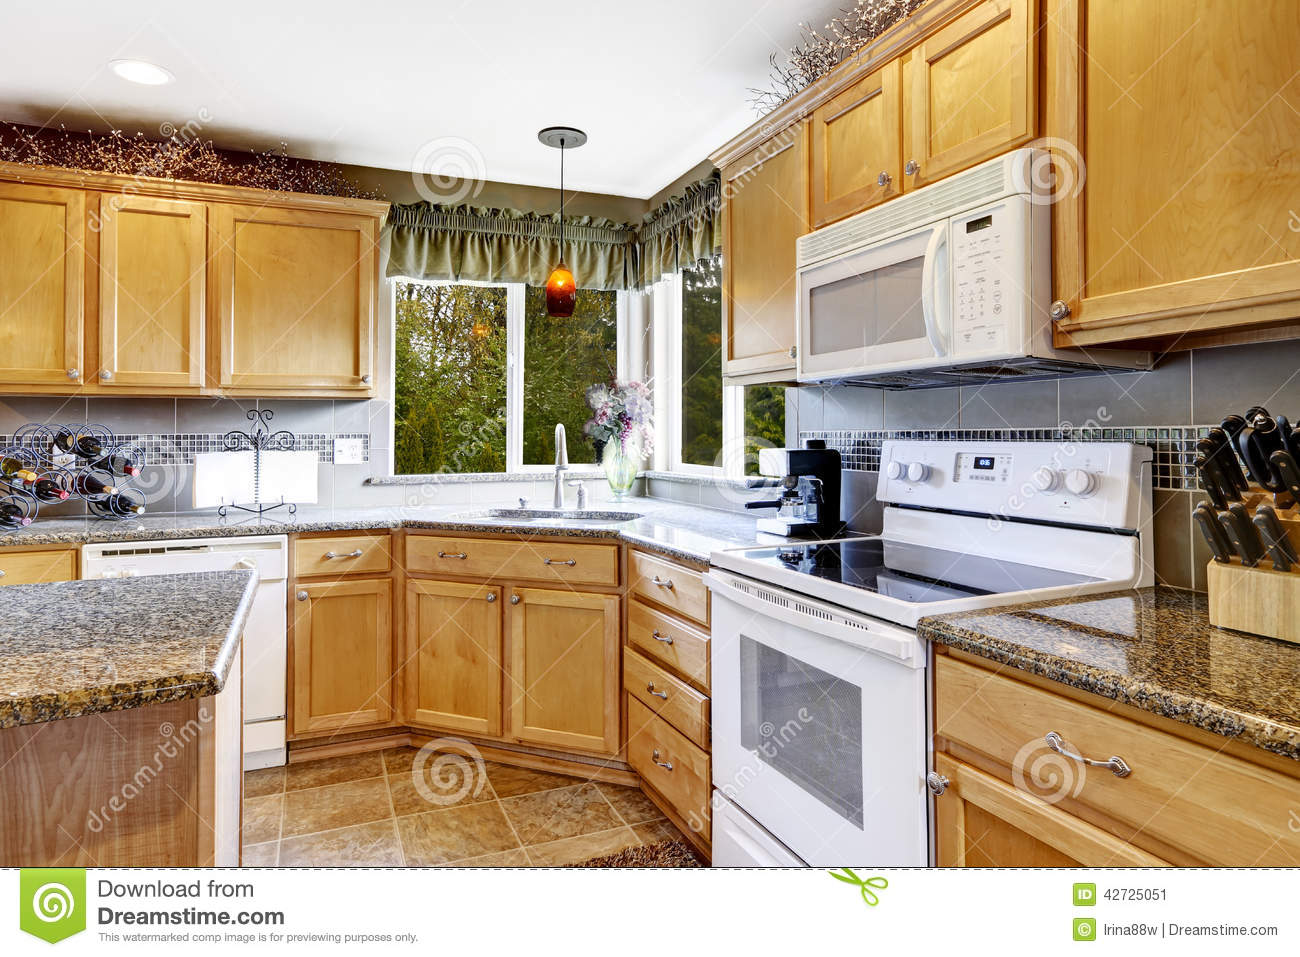 renew kitchen cabinets commercial supplies bright room interior with white appliances stock ...